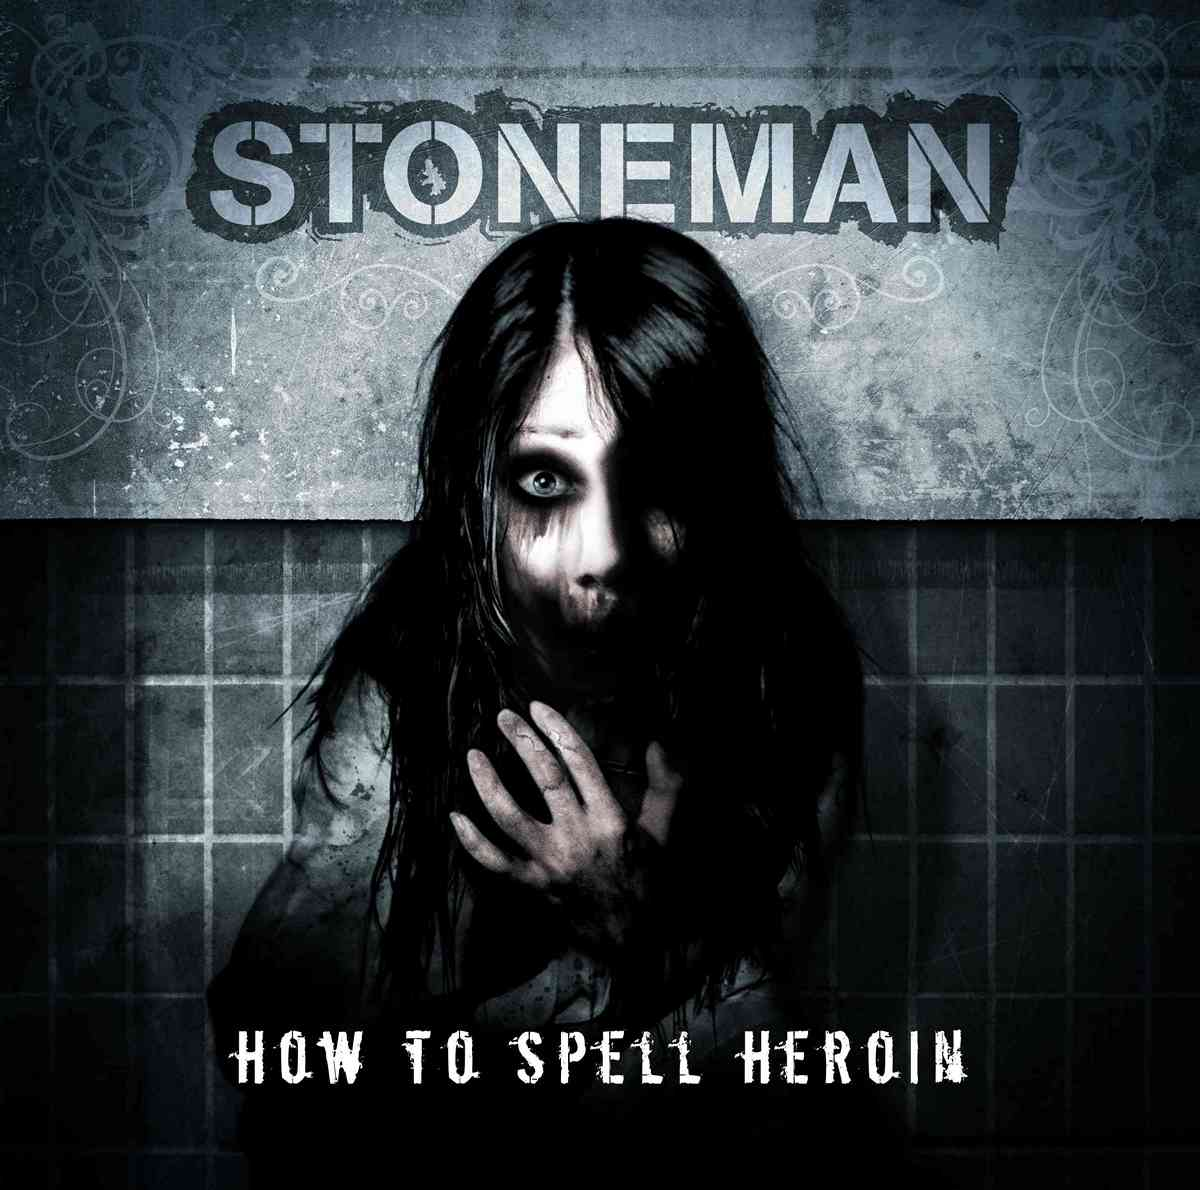 Stoneman: How To Spell Heroin (2007) Book Cover